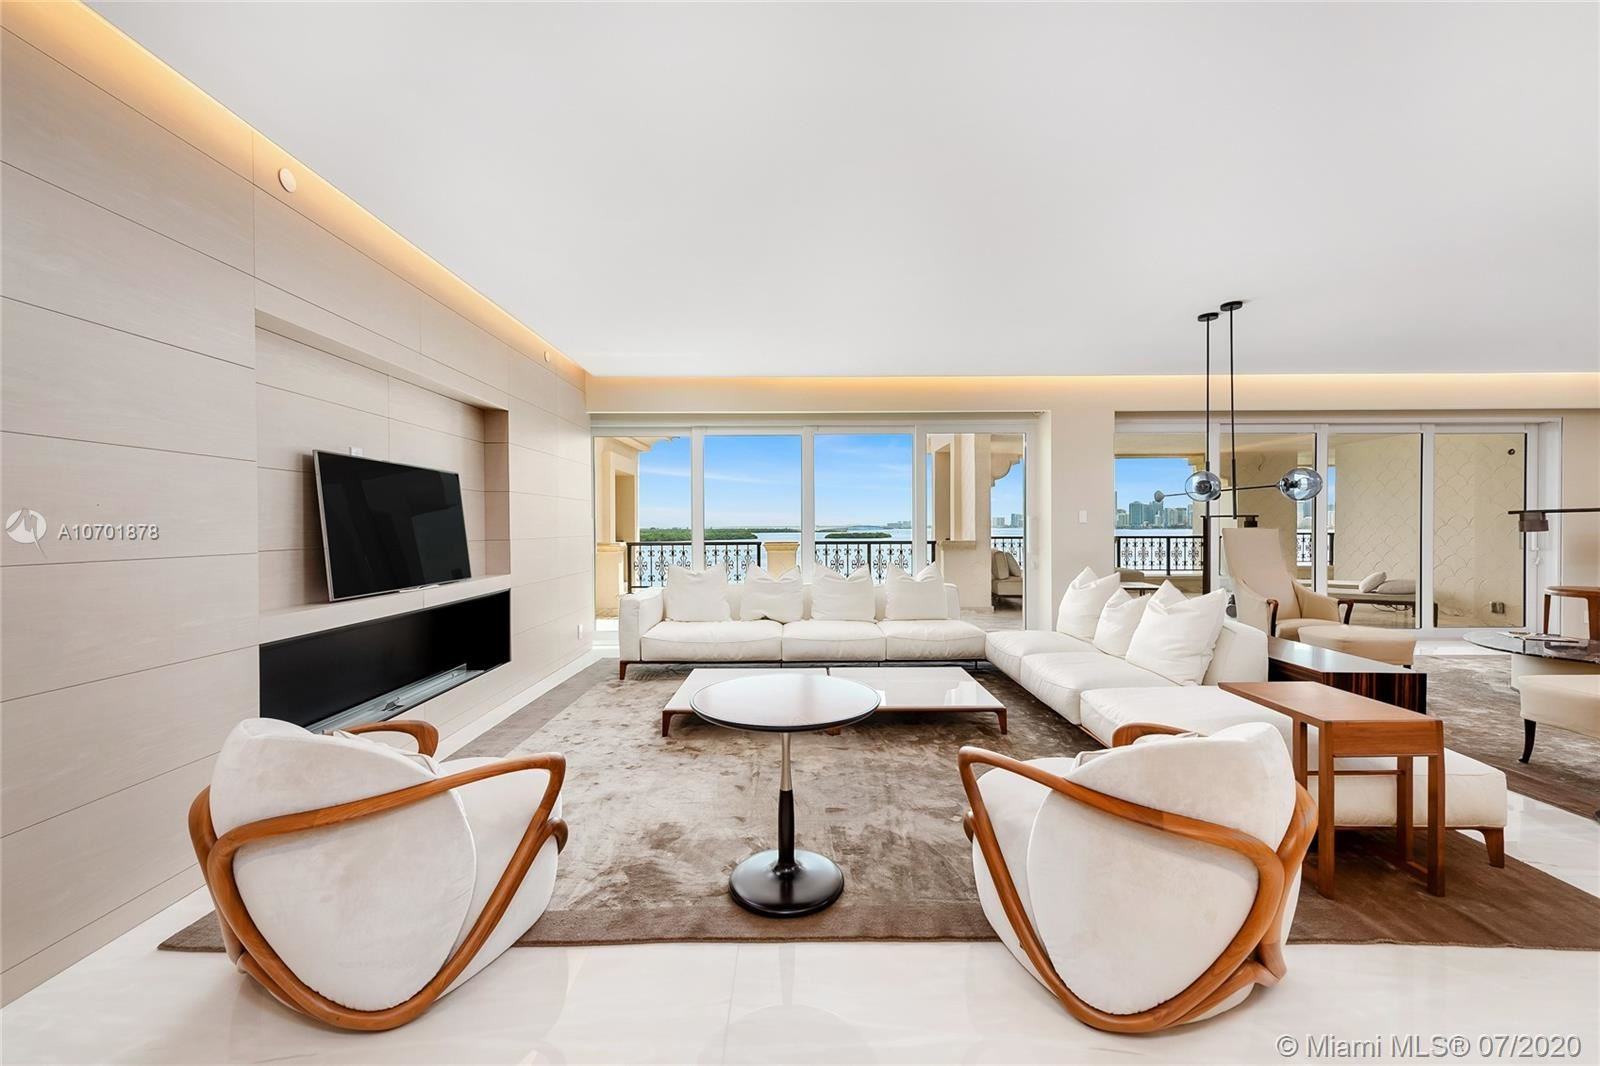 Photo 2 of Listing MLS a10701878 in 5292 Fisher Island Dr #5292 Miami FL 33109